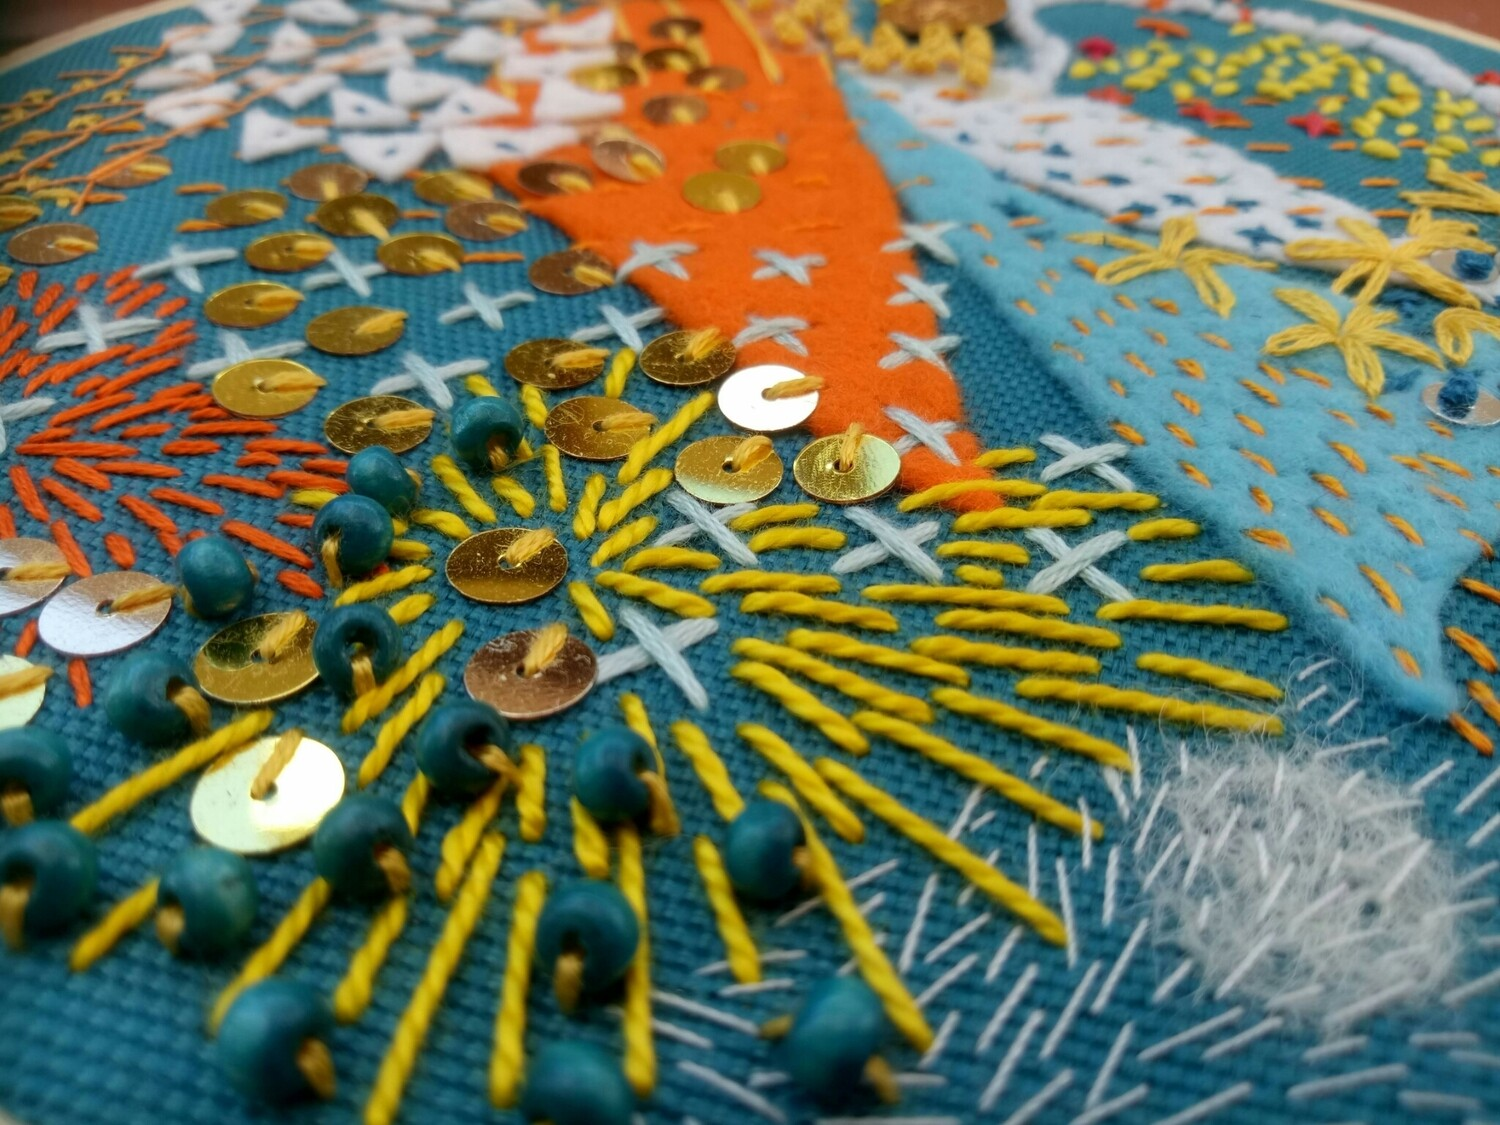 Abstract Embroidery - 1 to 4pm, Sunday 18th October